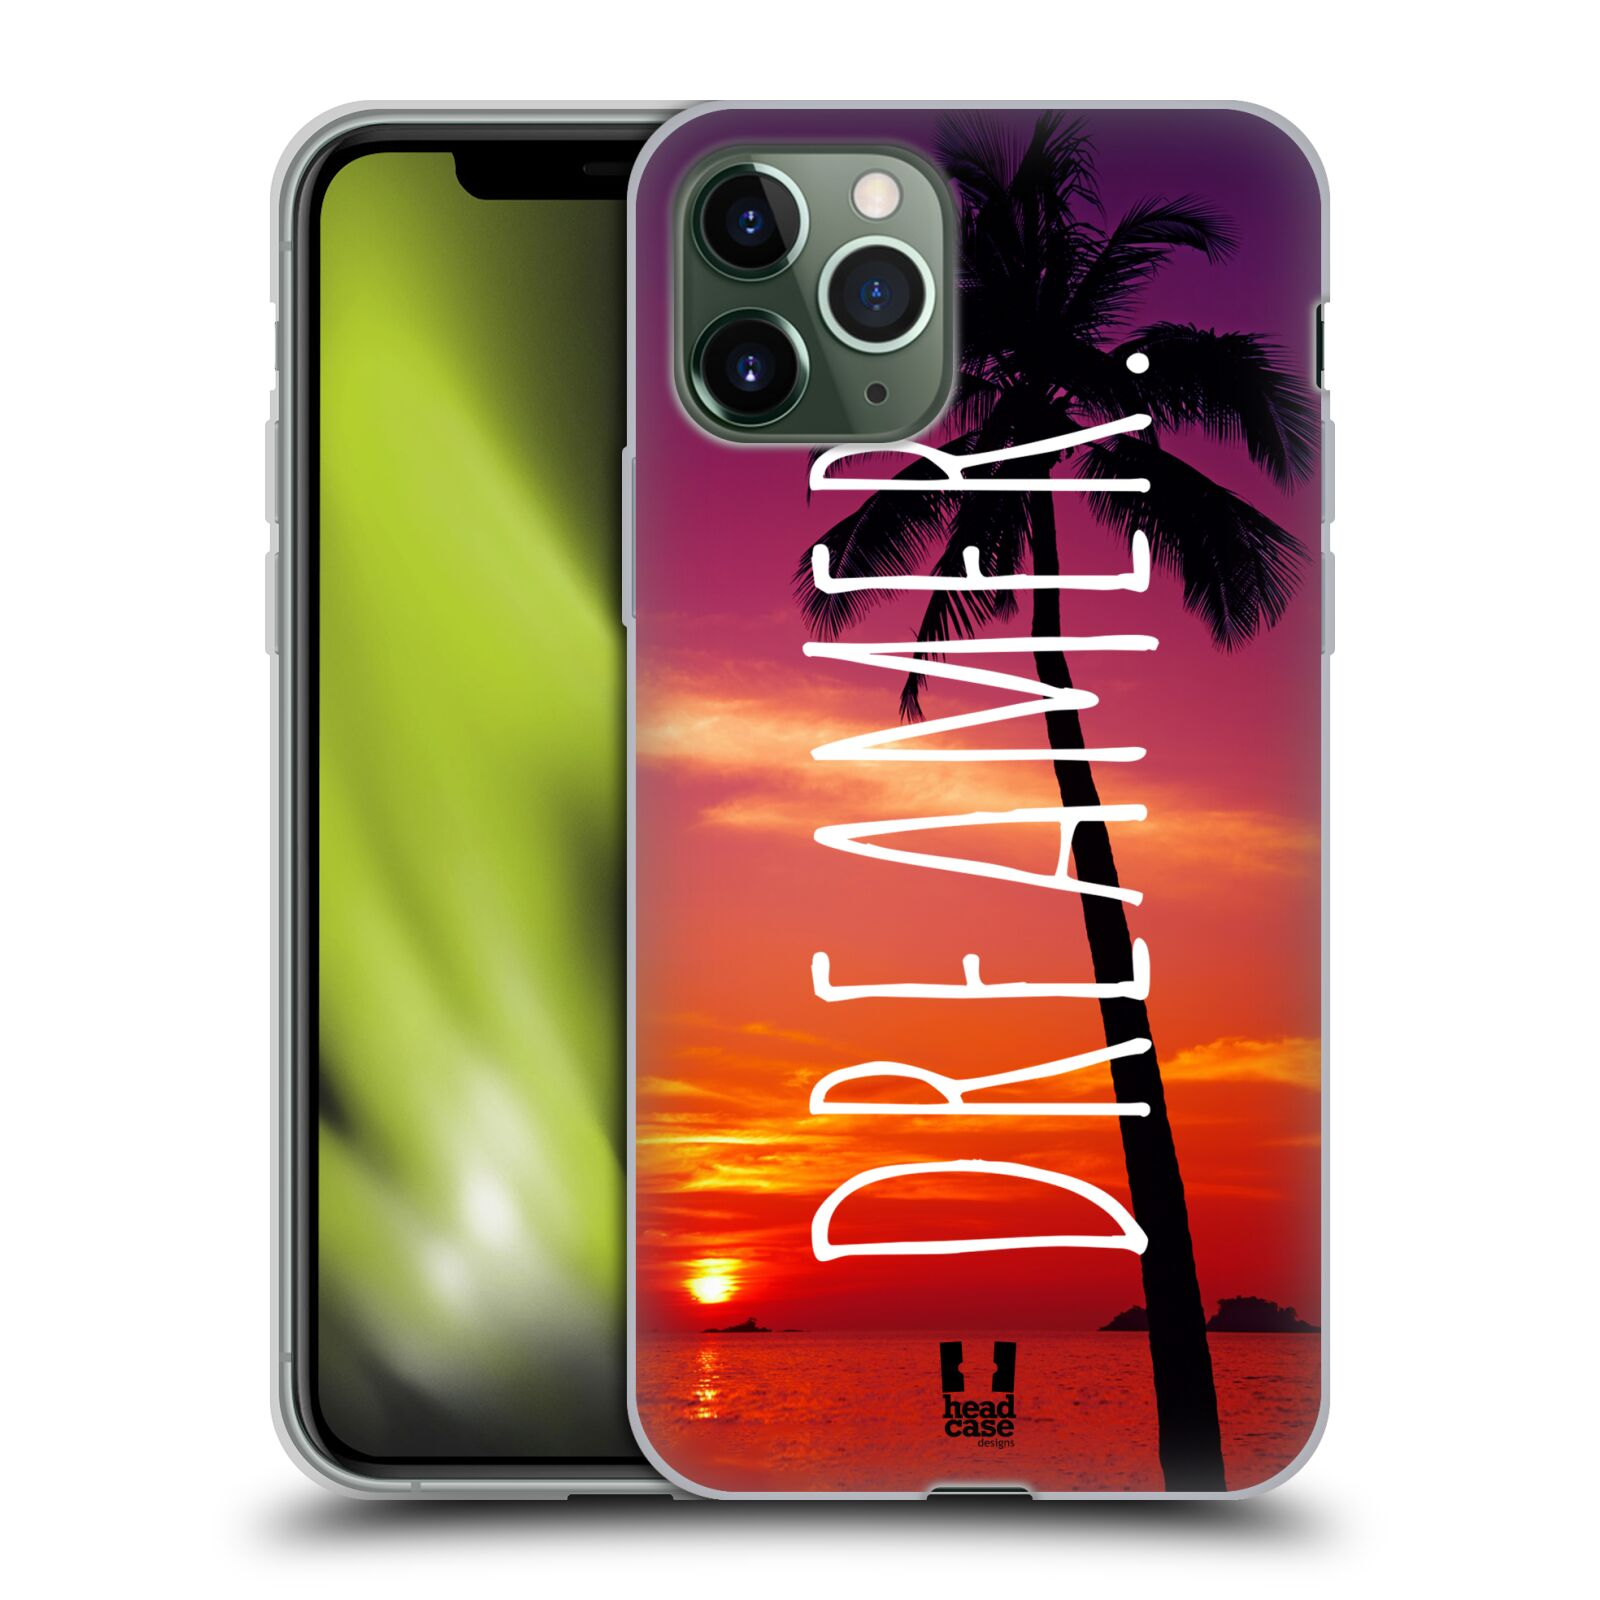 original krytu na iphone 6 plus , Silikonové pouzdro na mobil Apple iPhone 11 Pro - Head Case - MIX DREAMER